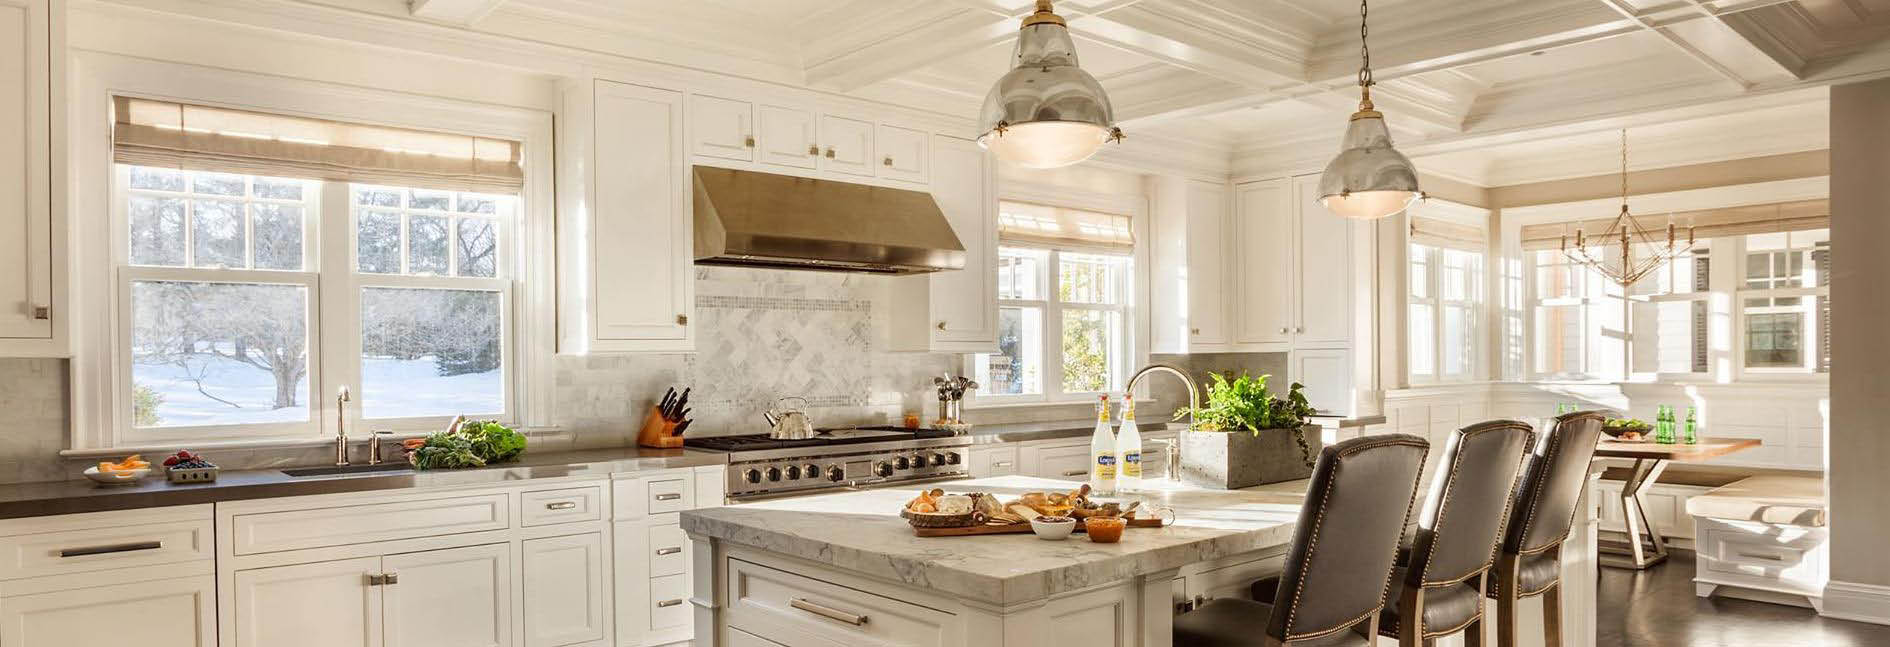 Cabinetry by Artistic Design in West Allis, WI - Local Coupons July ...